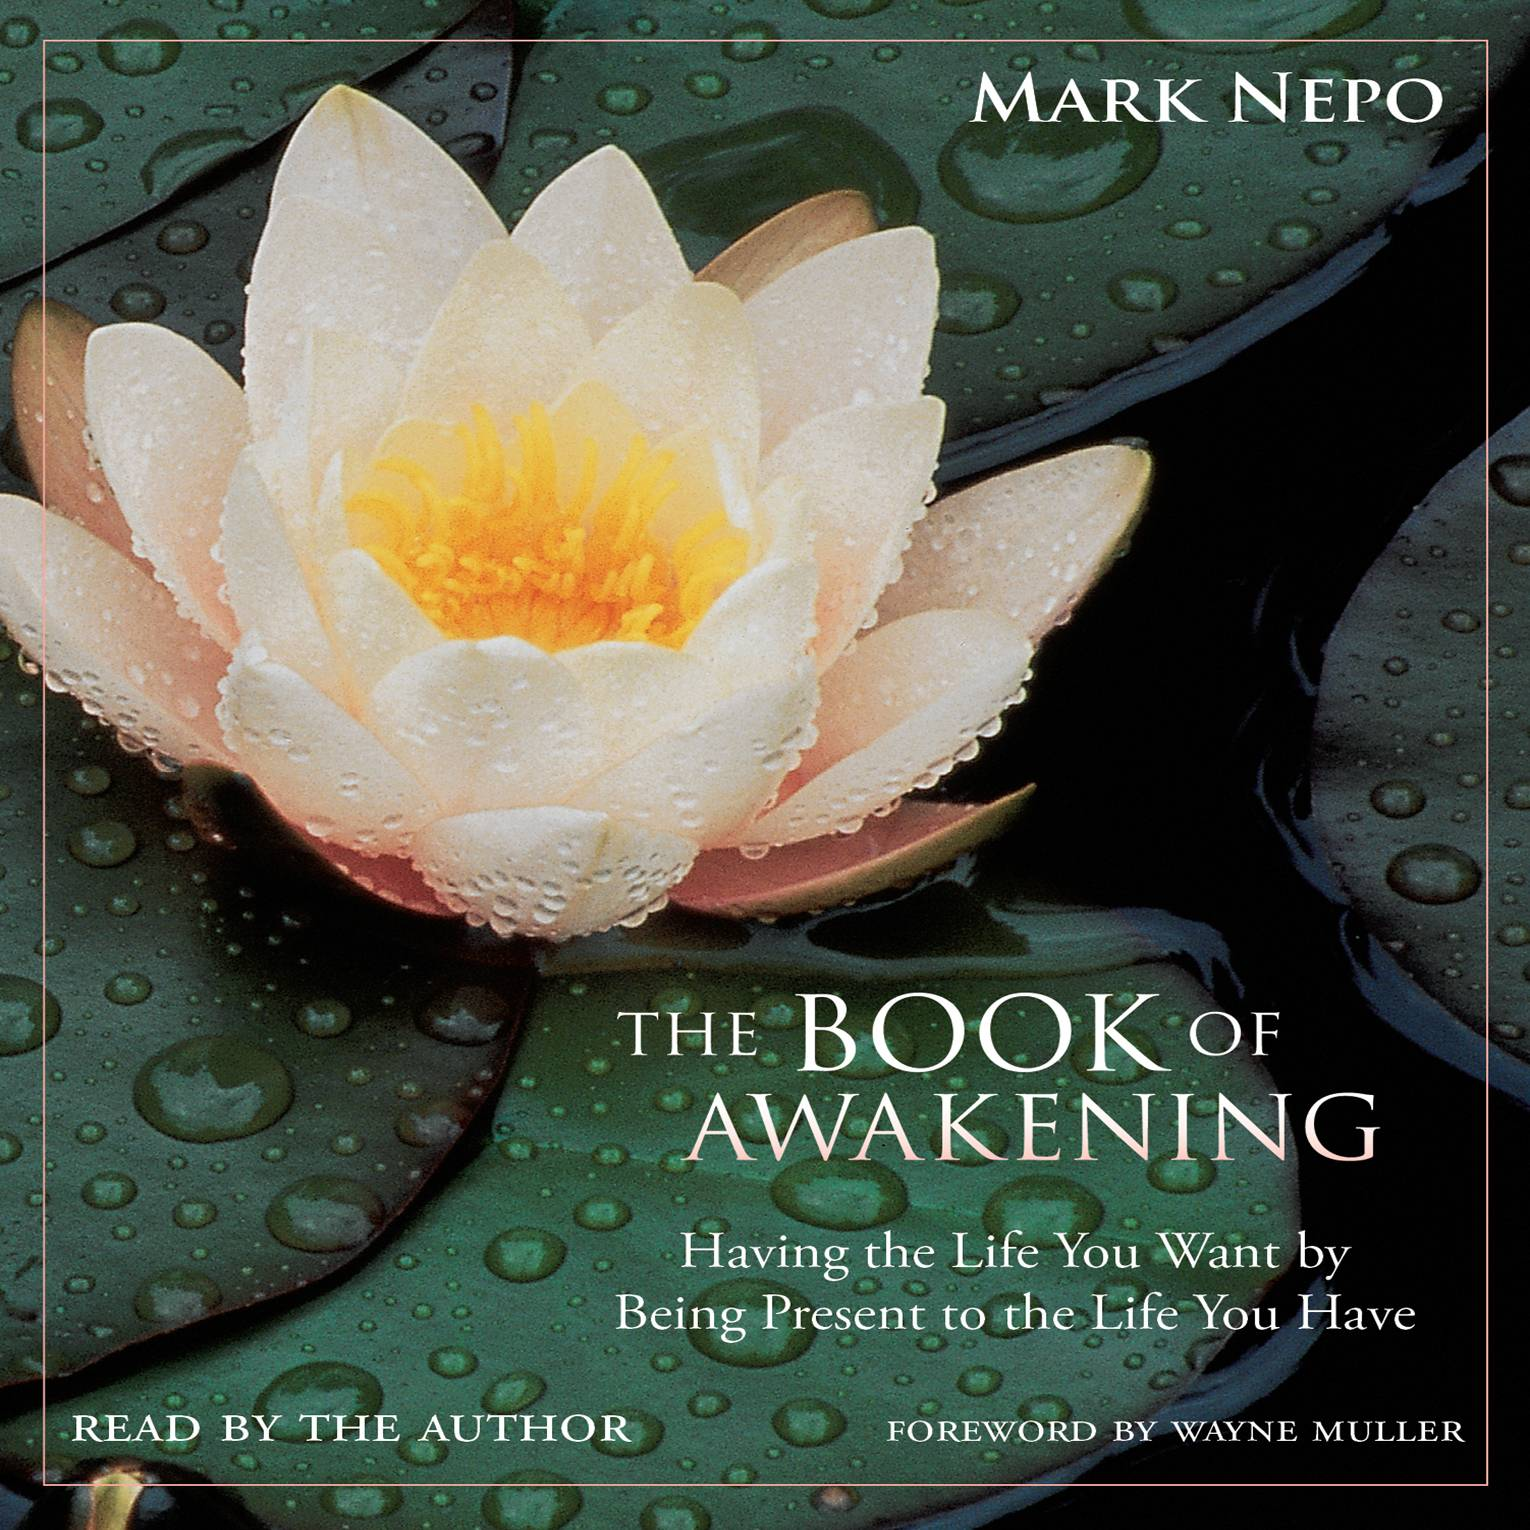 FROM WITHIN - The Book of Awakening: Having the Life You Want by Being Present to the Life You Have by Mark NepoFilled with key pointers from Mark Nepo, a philosopher, mini lessons will teach you why not to take life for granted. This is a spiritual book that may help you awaken ways to be more appreciative of the life you have, therefore creating a better life.(Photo:Conari Press)